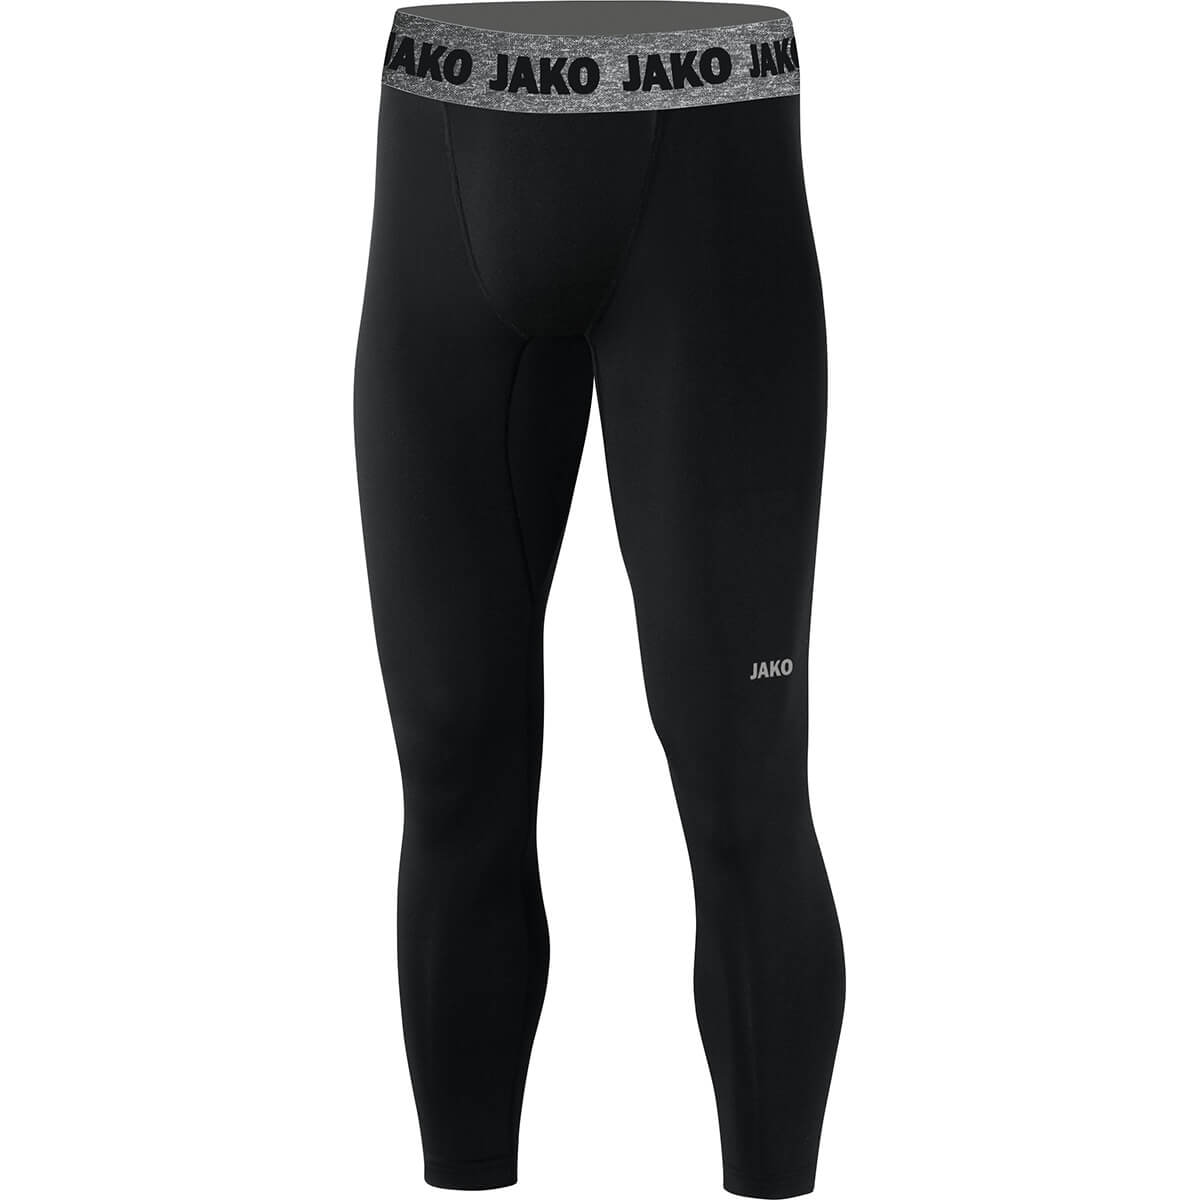 Jako Long Tight Winter Herren 8457  | div. Größen / Farben